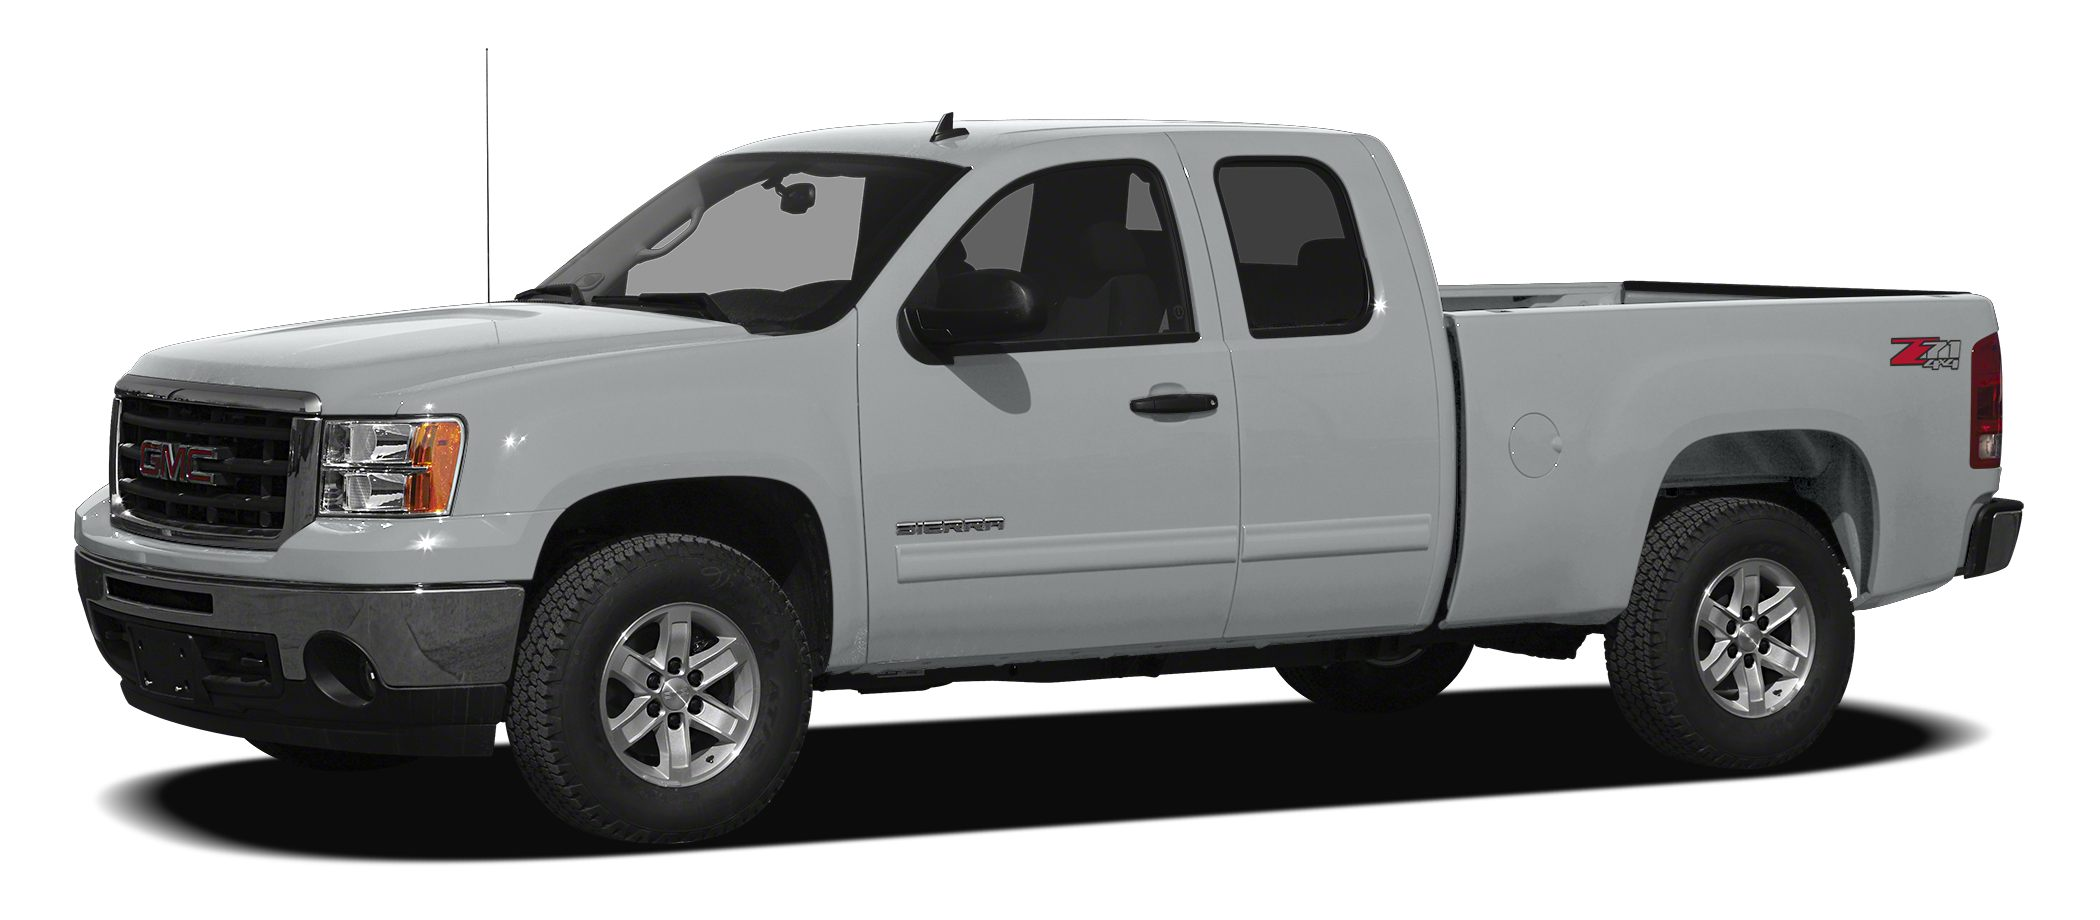 2011 GMC Sierra 1500 SLE Check out this 2011 GMC Sierra 1500 SLE It has a Automatic transmission